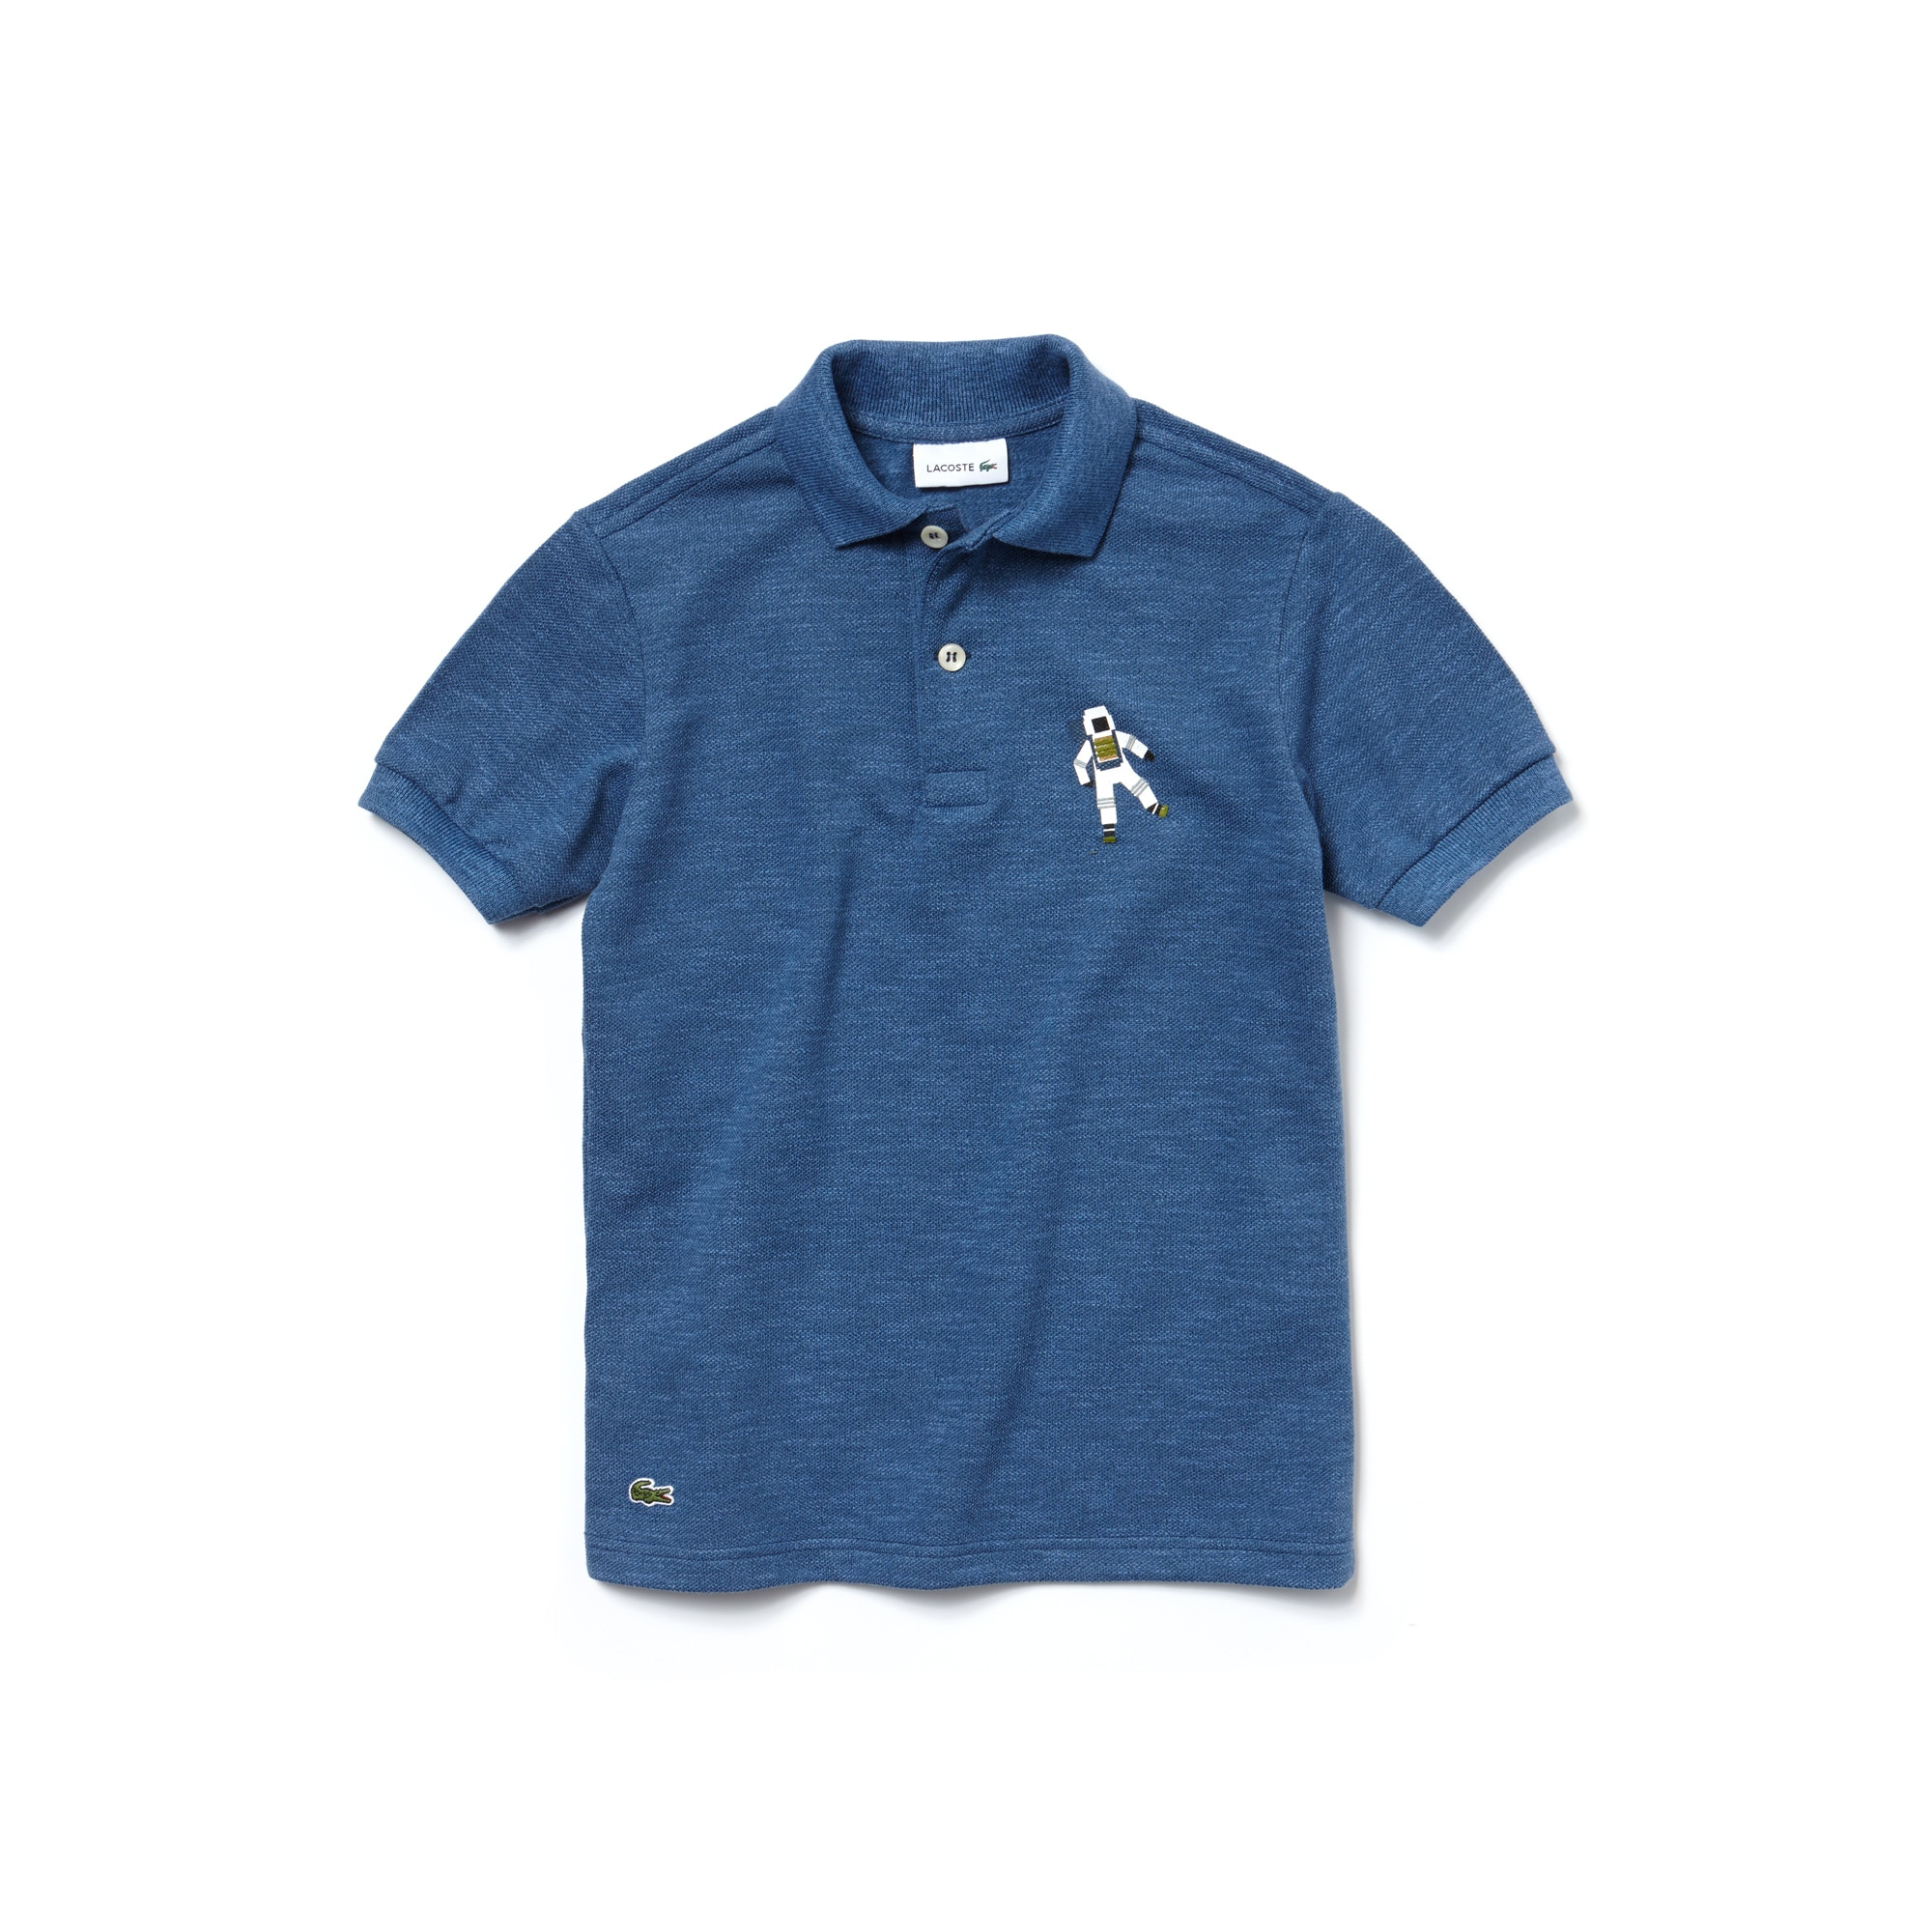 Boys' Astronaut Print Cotton Piqué Polo